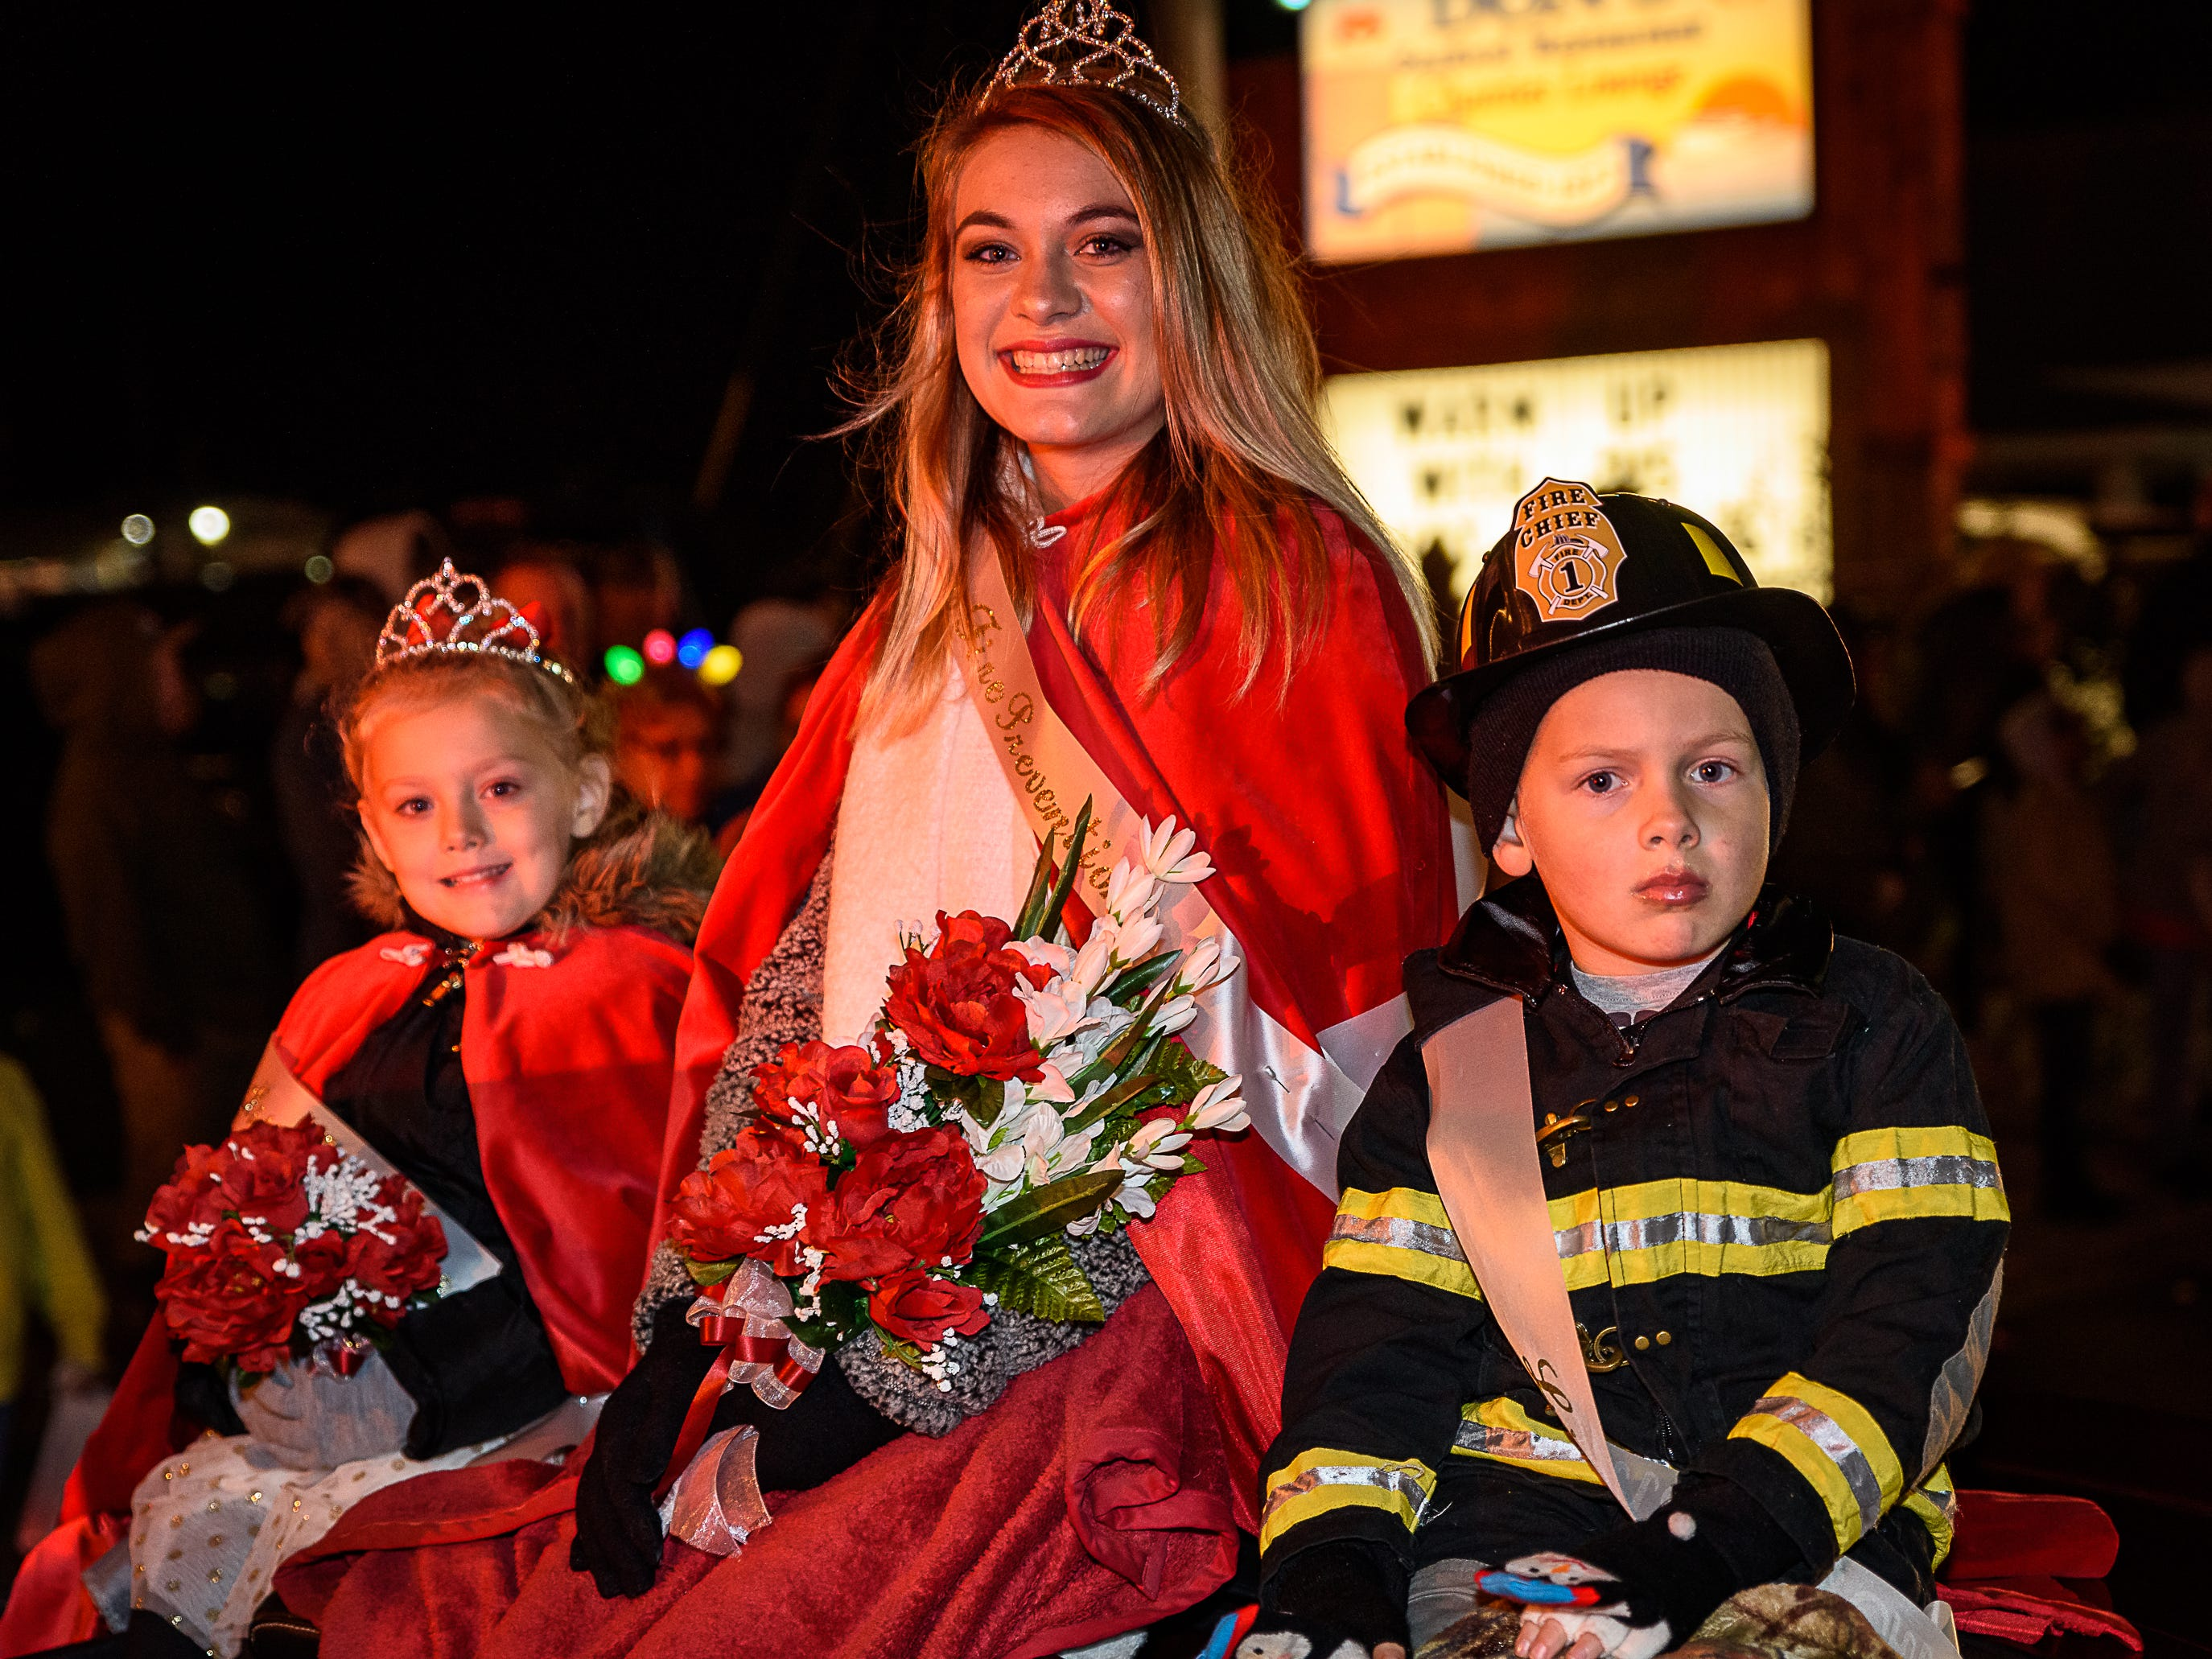 Miss Pocomoke Fire Prevention, center, rides in the Chincoteague Christmas parade with Little Miss and Little Mr. Fire Prevention.